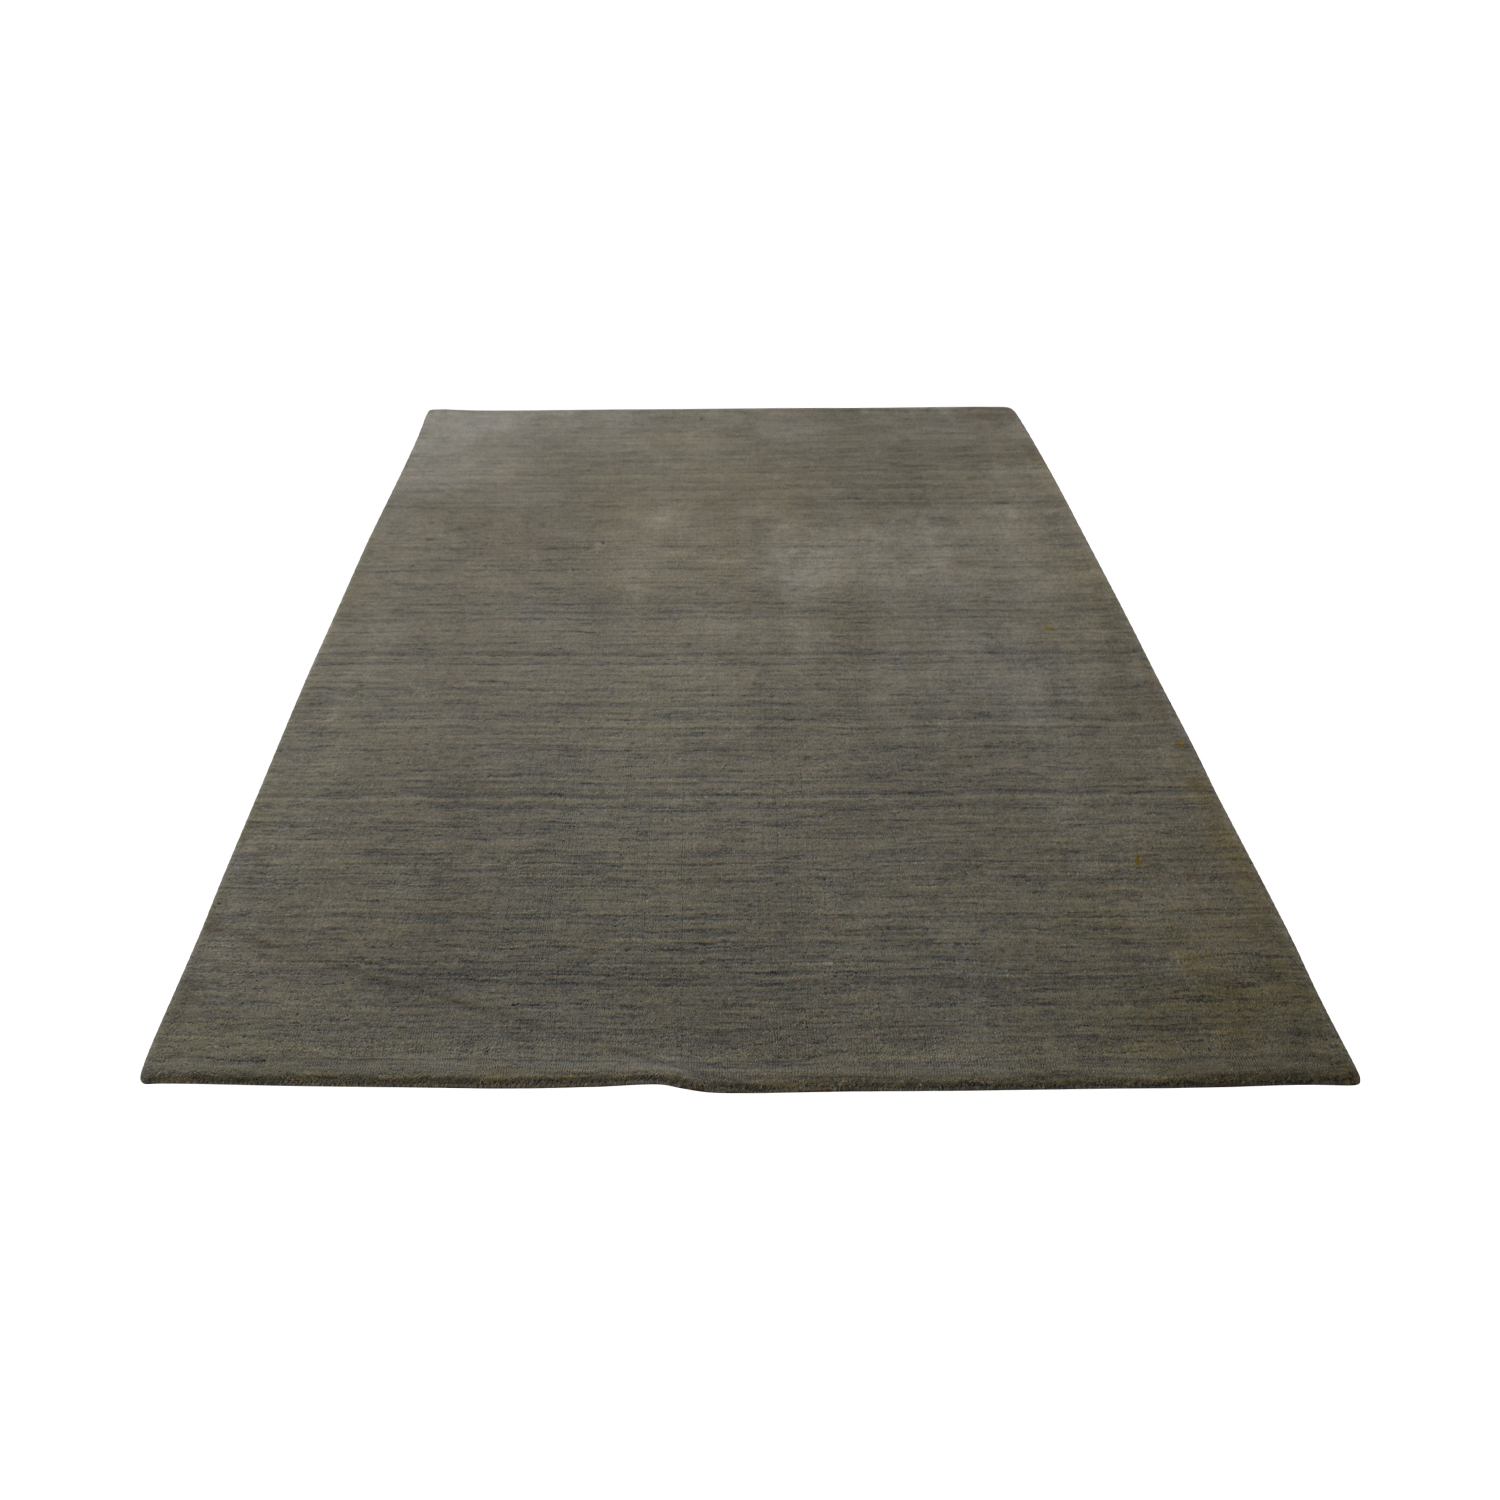 Oriental Weavers Oriental Weavers Aniston Grey Rug nj